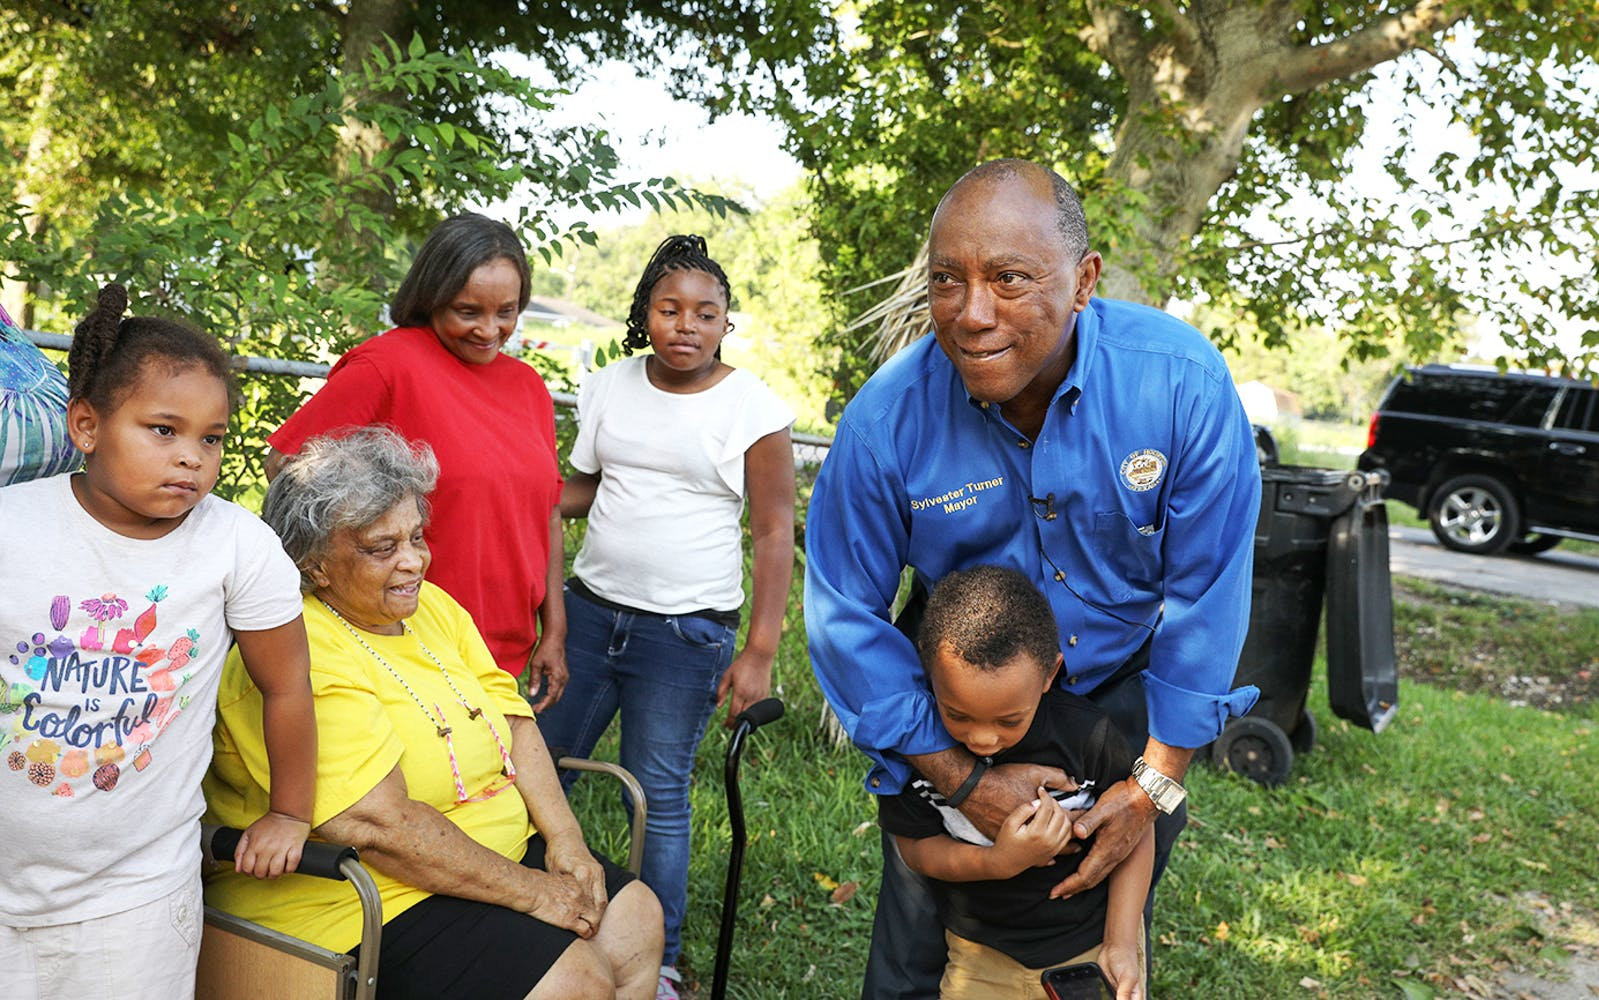 Mayor Turner hugs five-year-old Kamarion Henderson in the Kashmere Gardens neighborhood on August 25, 2018 in Houston. August 25 was the one-year anniversary of when Hurricane Harvey made landfall on the Texas coast, before inflicting severe damage on the Kashmere Gardens neighborhood and the city of Houston.